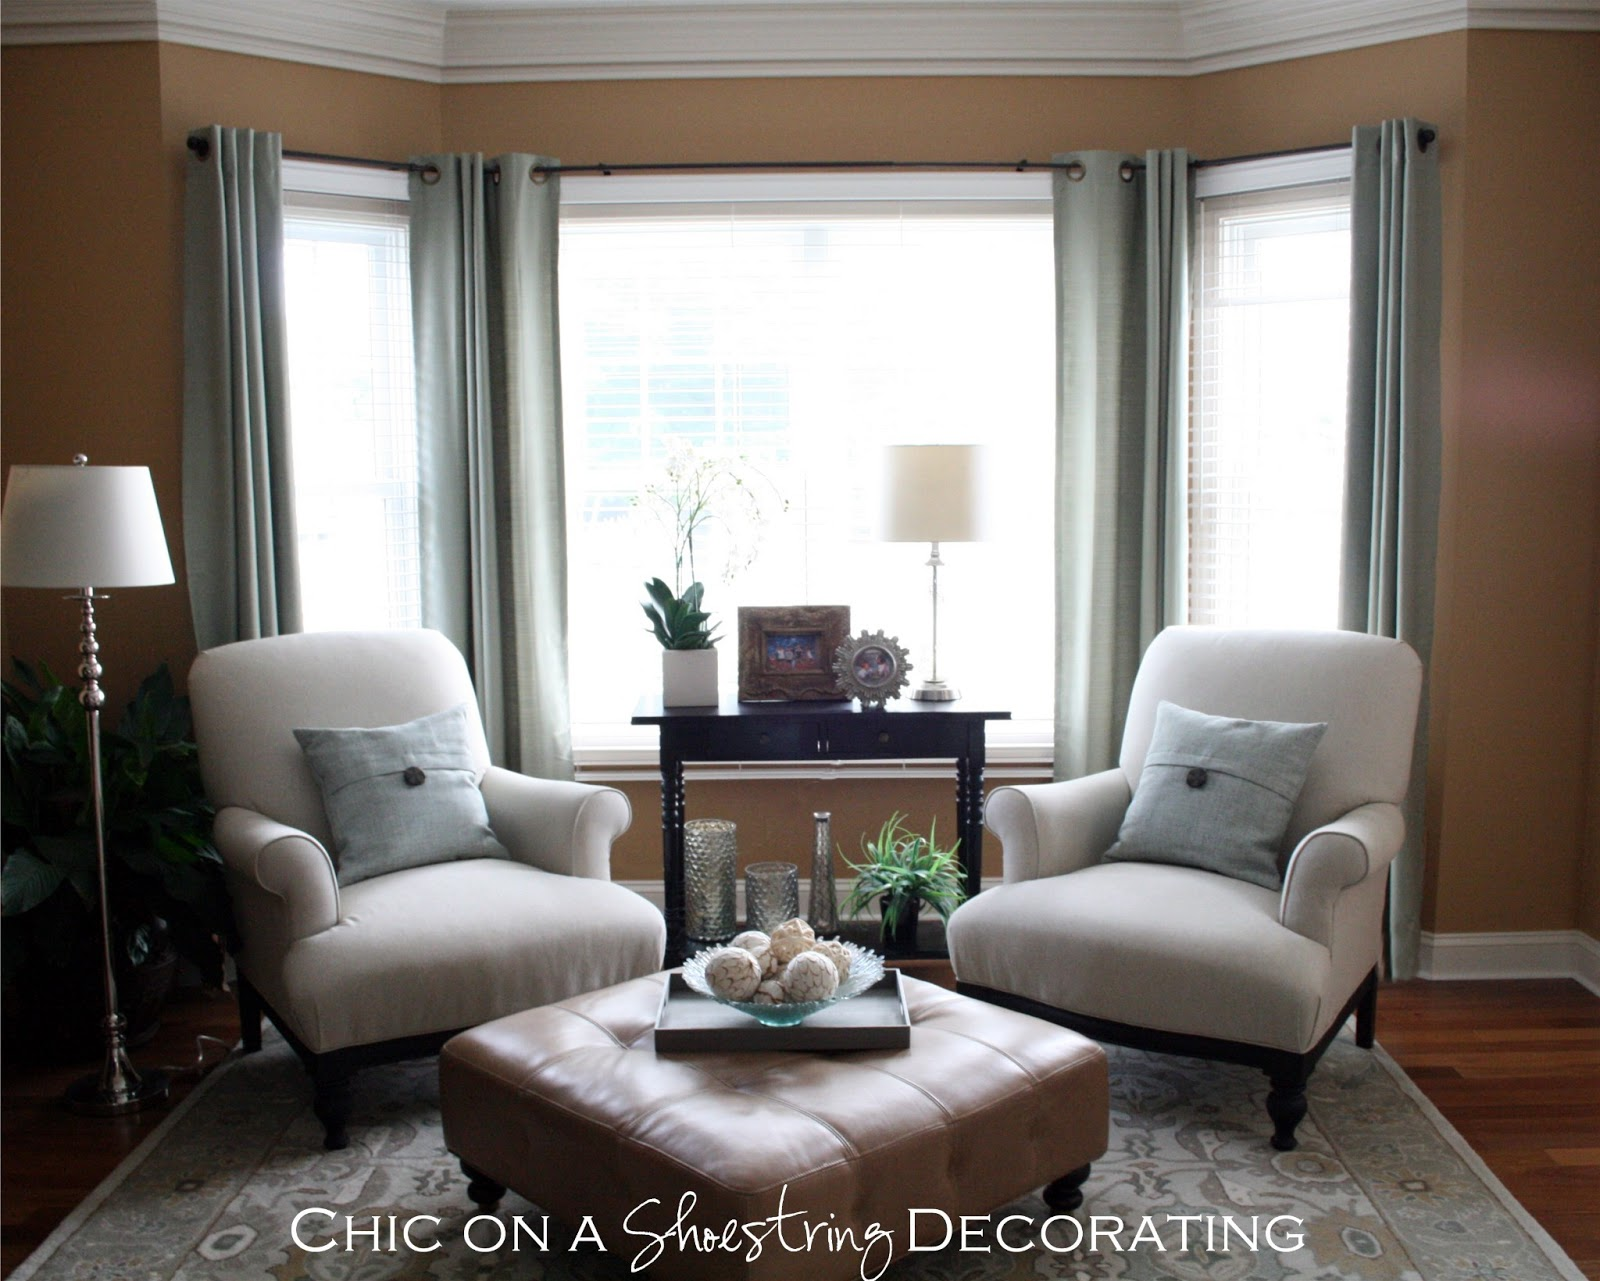 Chic on a shoestring decorating grand piano living room for Small front room